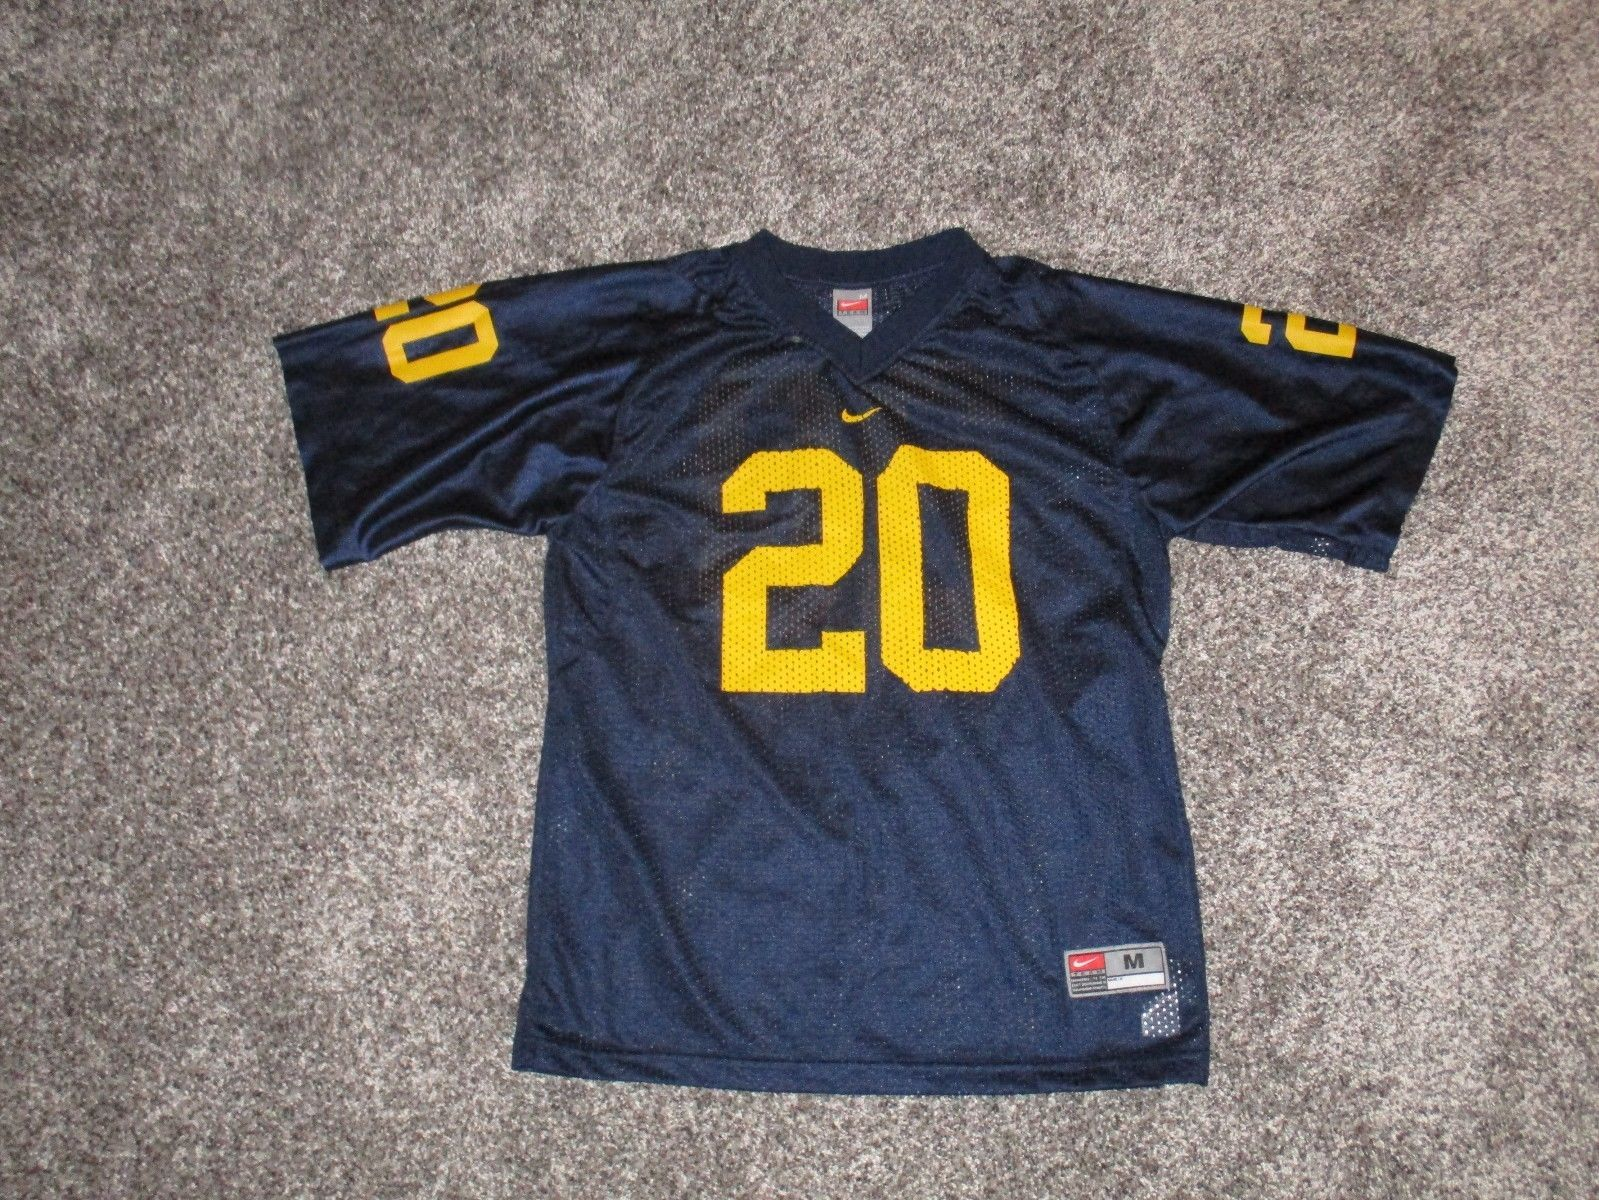 separation shoes 66a67 5ee84 NIKE Michigan Wolverines #20 Football Jersey and 50 similar ...